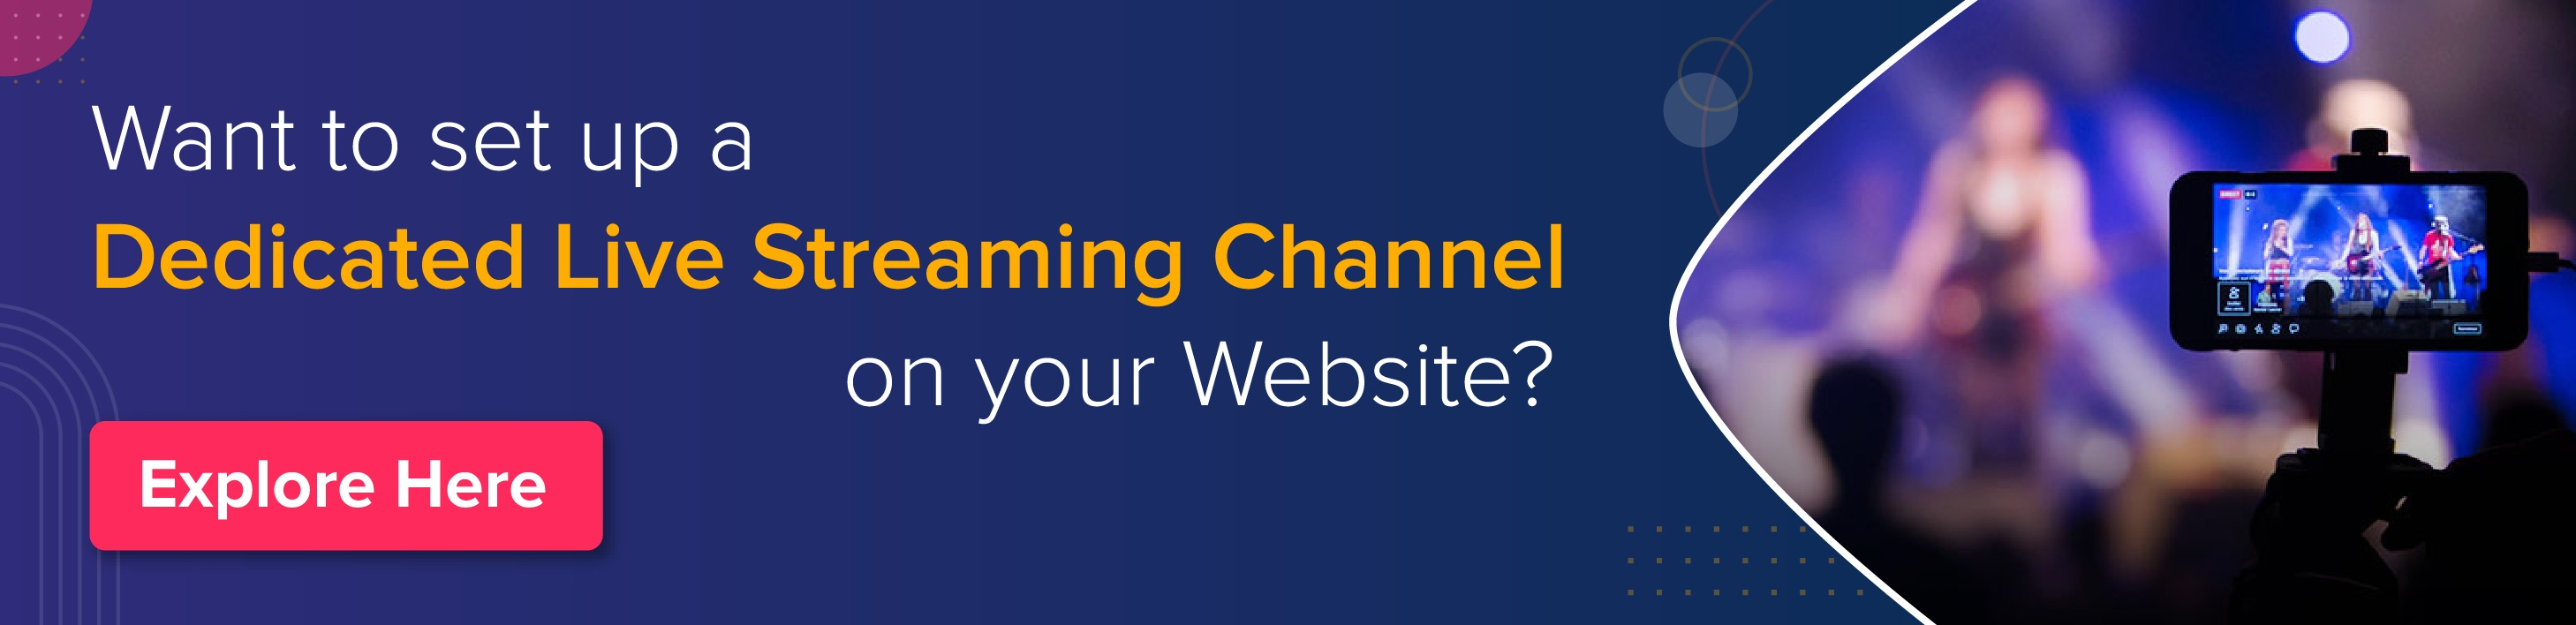 How to Set Up Live Streaming Video on Website